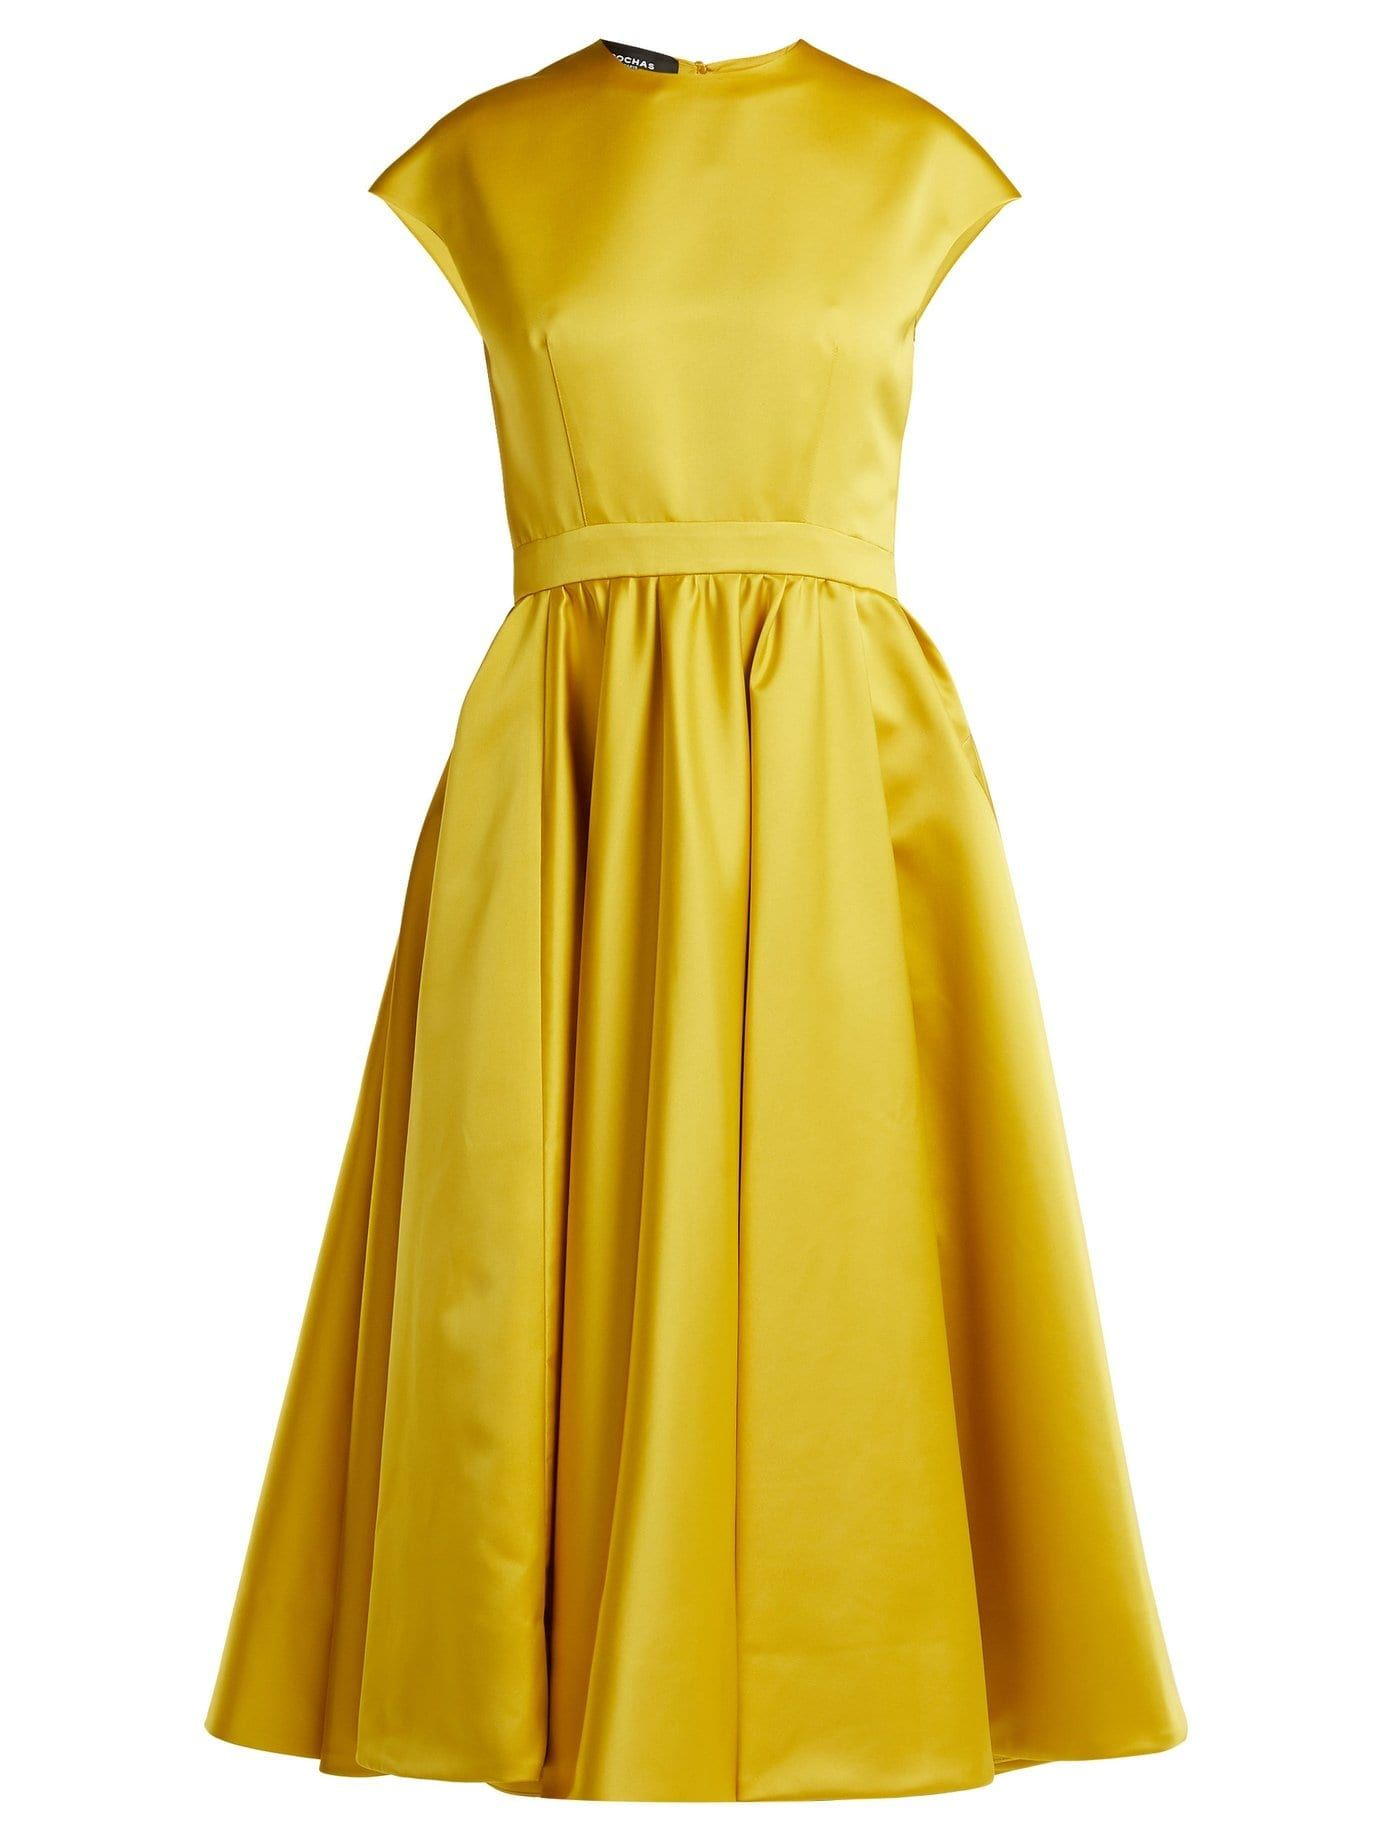 ROCHAS Duchess Satin Midi Bumblebee Yellow Dress - We Select Dresses